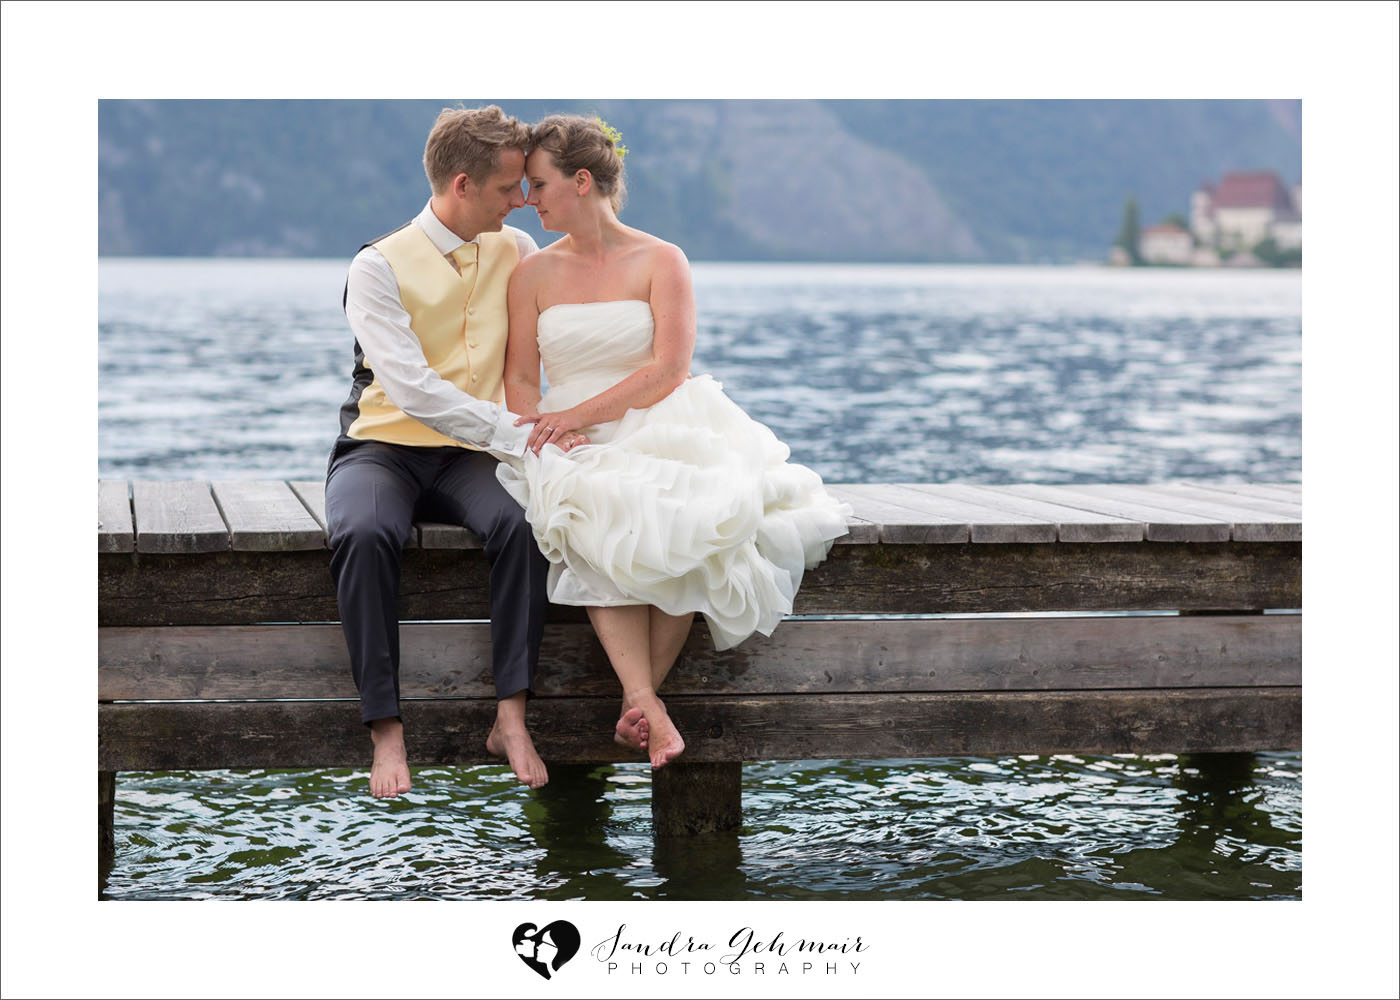 051_heiraten_am_see_spitzvilla_sandra_gehmair